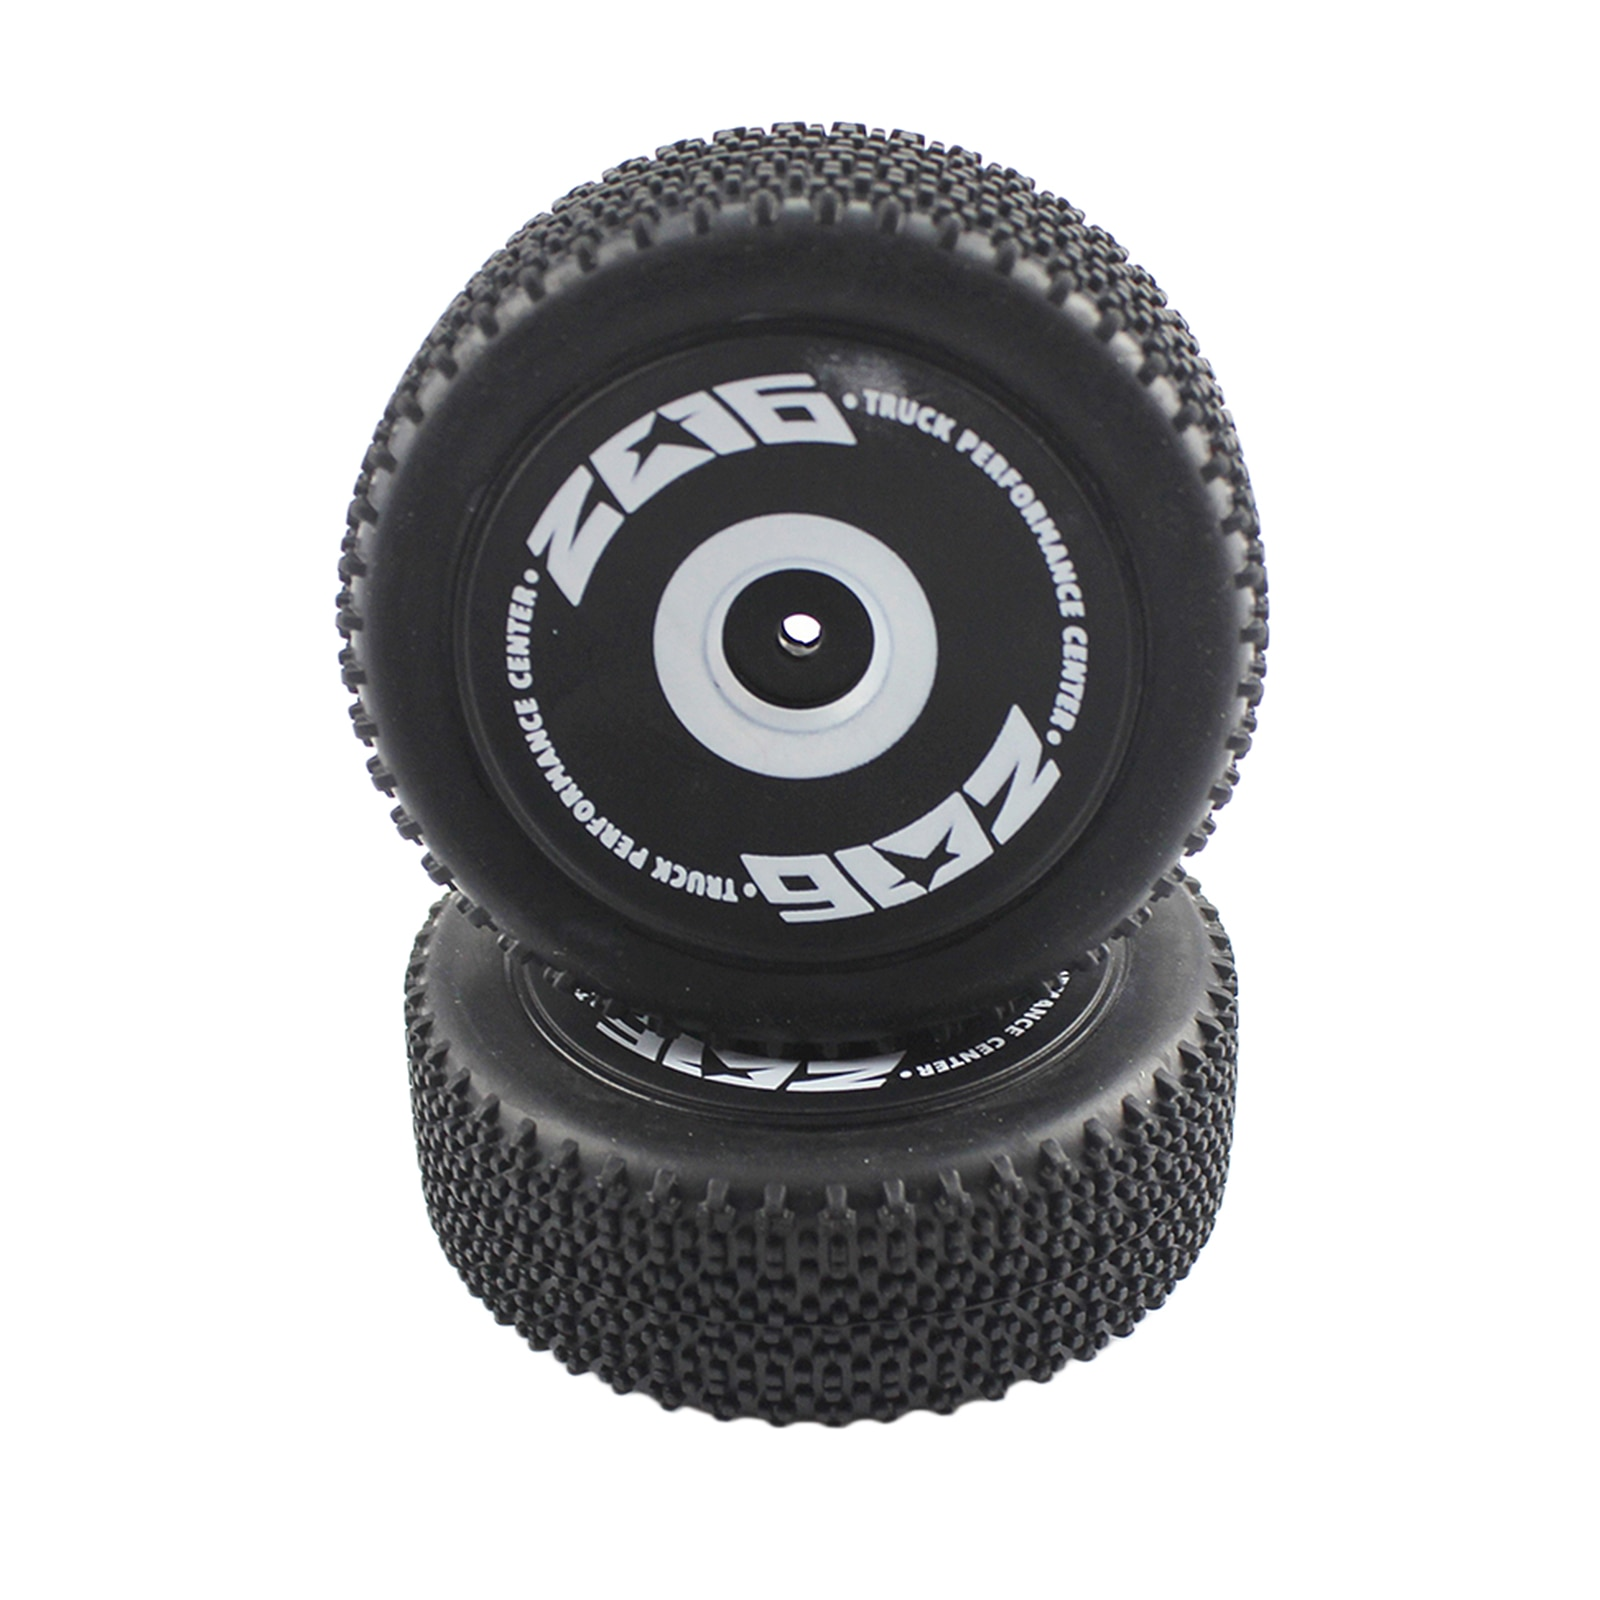 1/2 RC Crawler Car Front Tyres for WLtoys 124018 Upgrade Parts